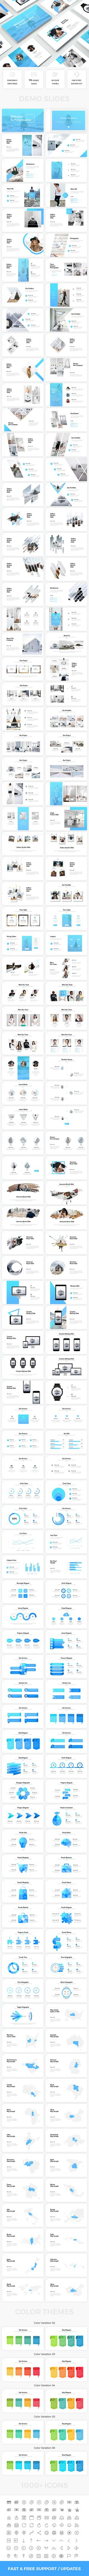 Business - Portfolio Powerpoint Template